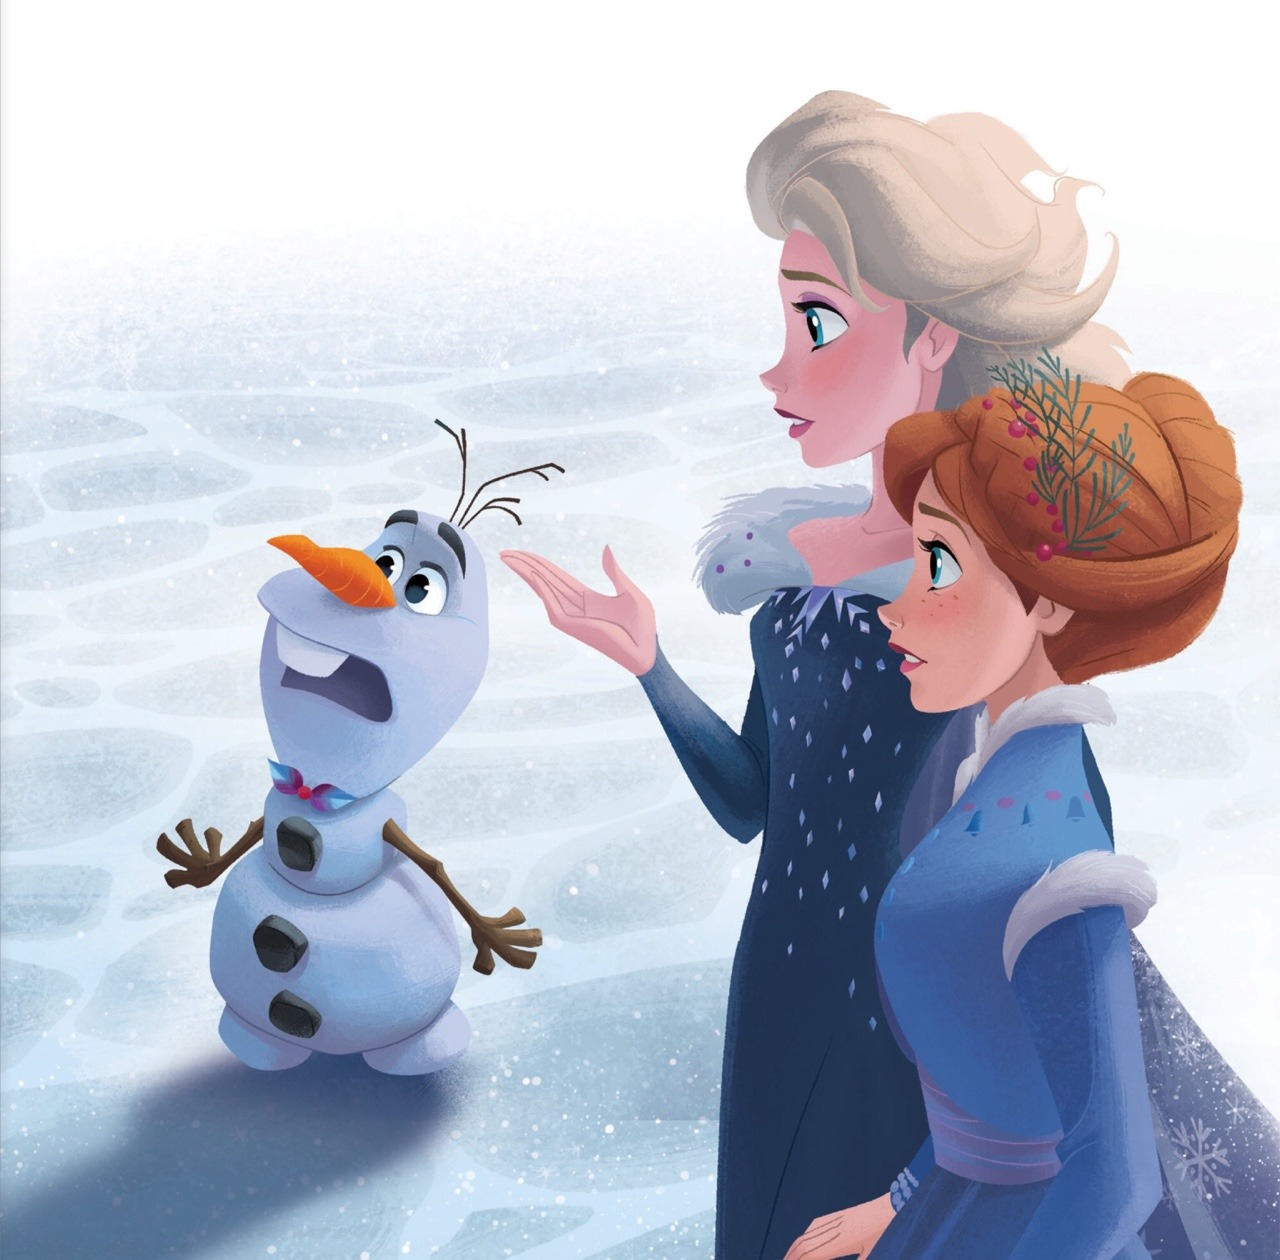 Olafs Frozen - Uma Aventura Congelante Adventure - Storybook Illustration